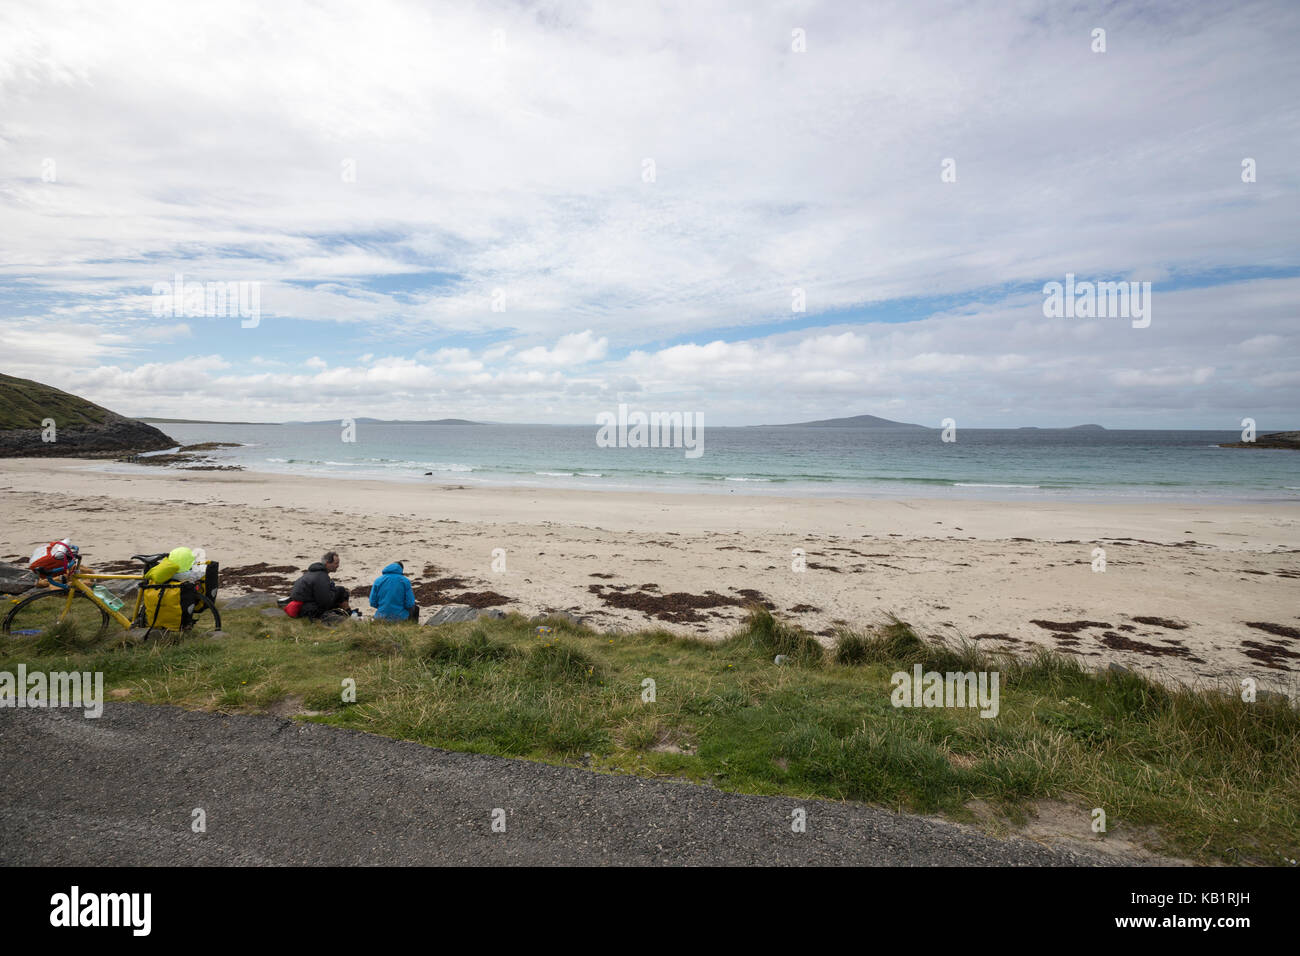 Two cyclist resting in front of a beach in Lewis and Harris island, Outer Hebrides, Scotland - Stock Image